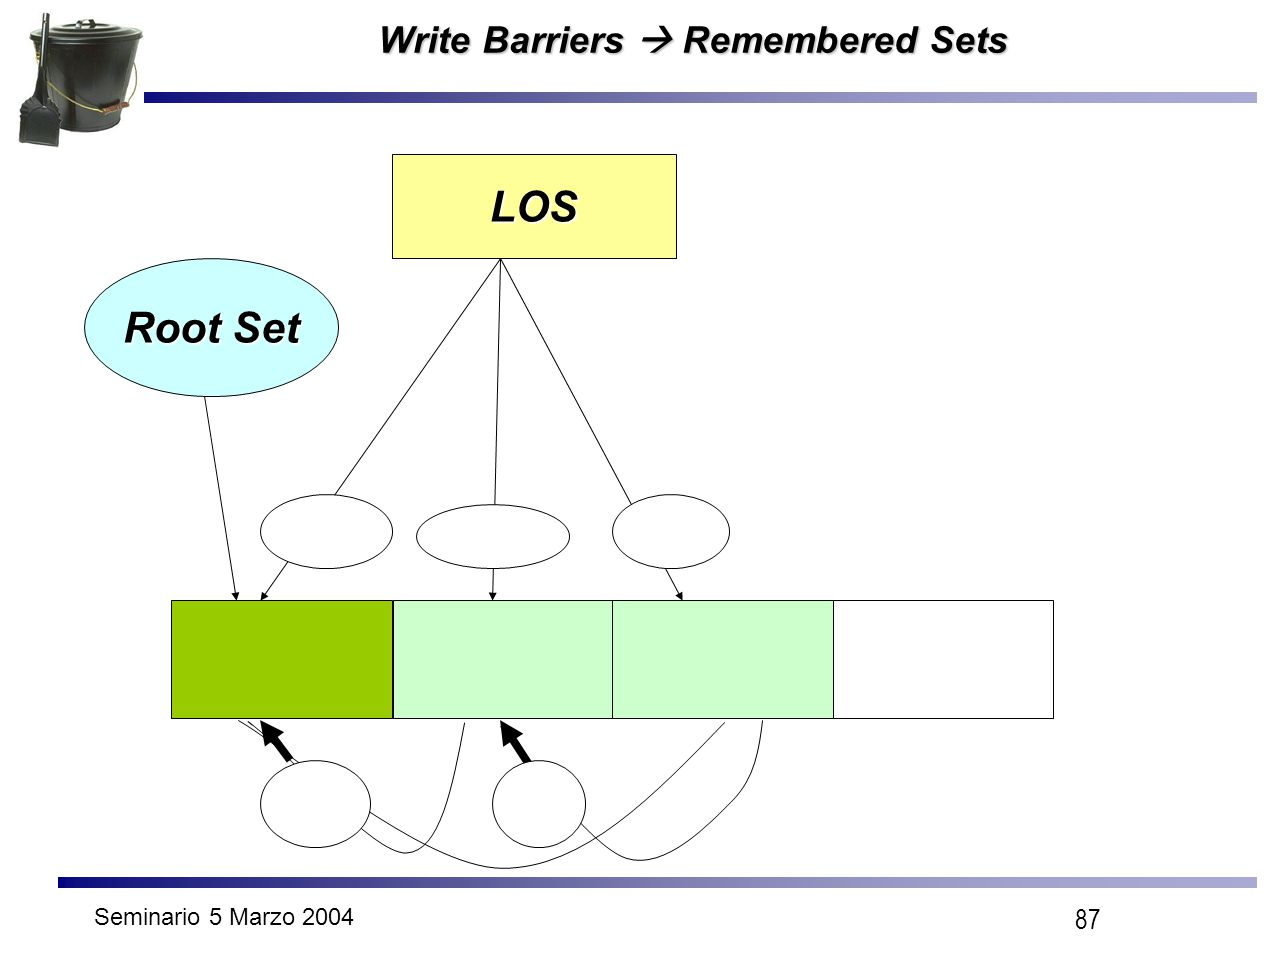 Seminario 5 Marzo 2004 87 Write Barriers  Remembered Sets LOS Root Set